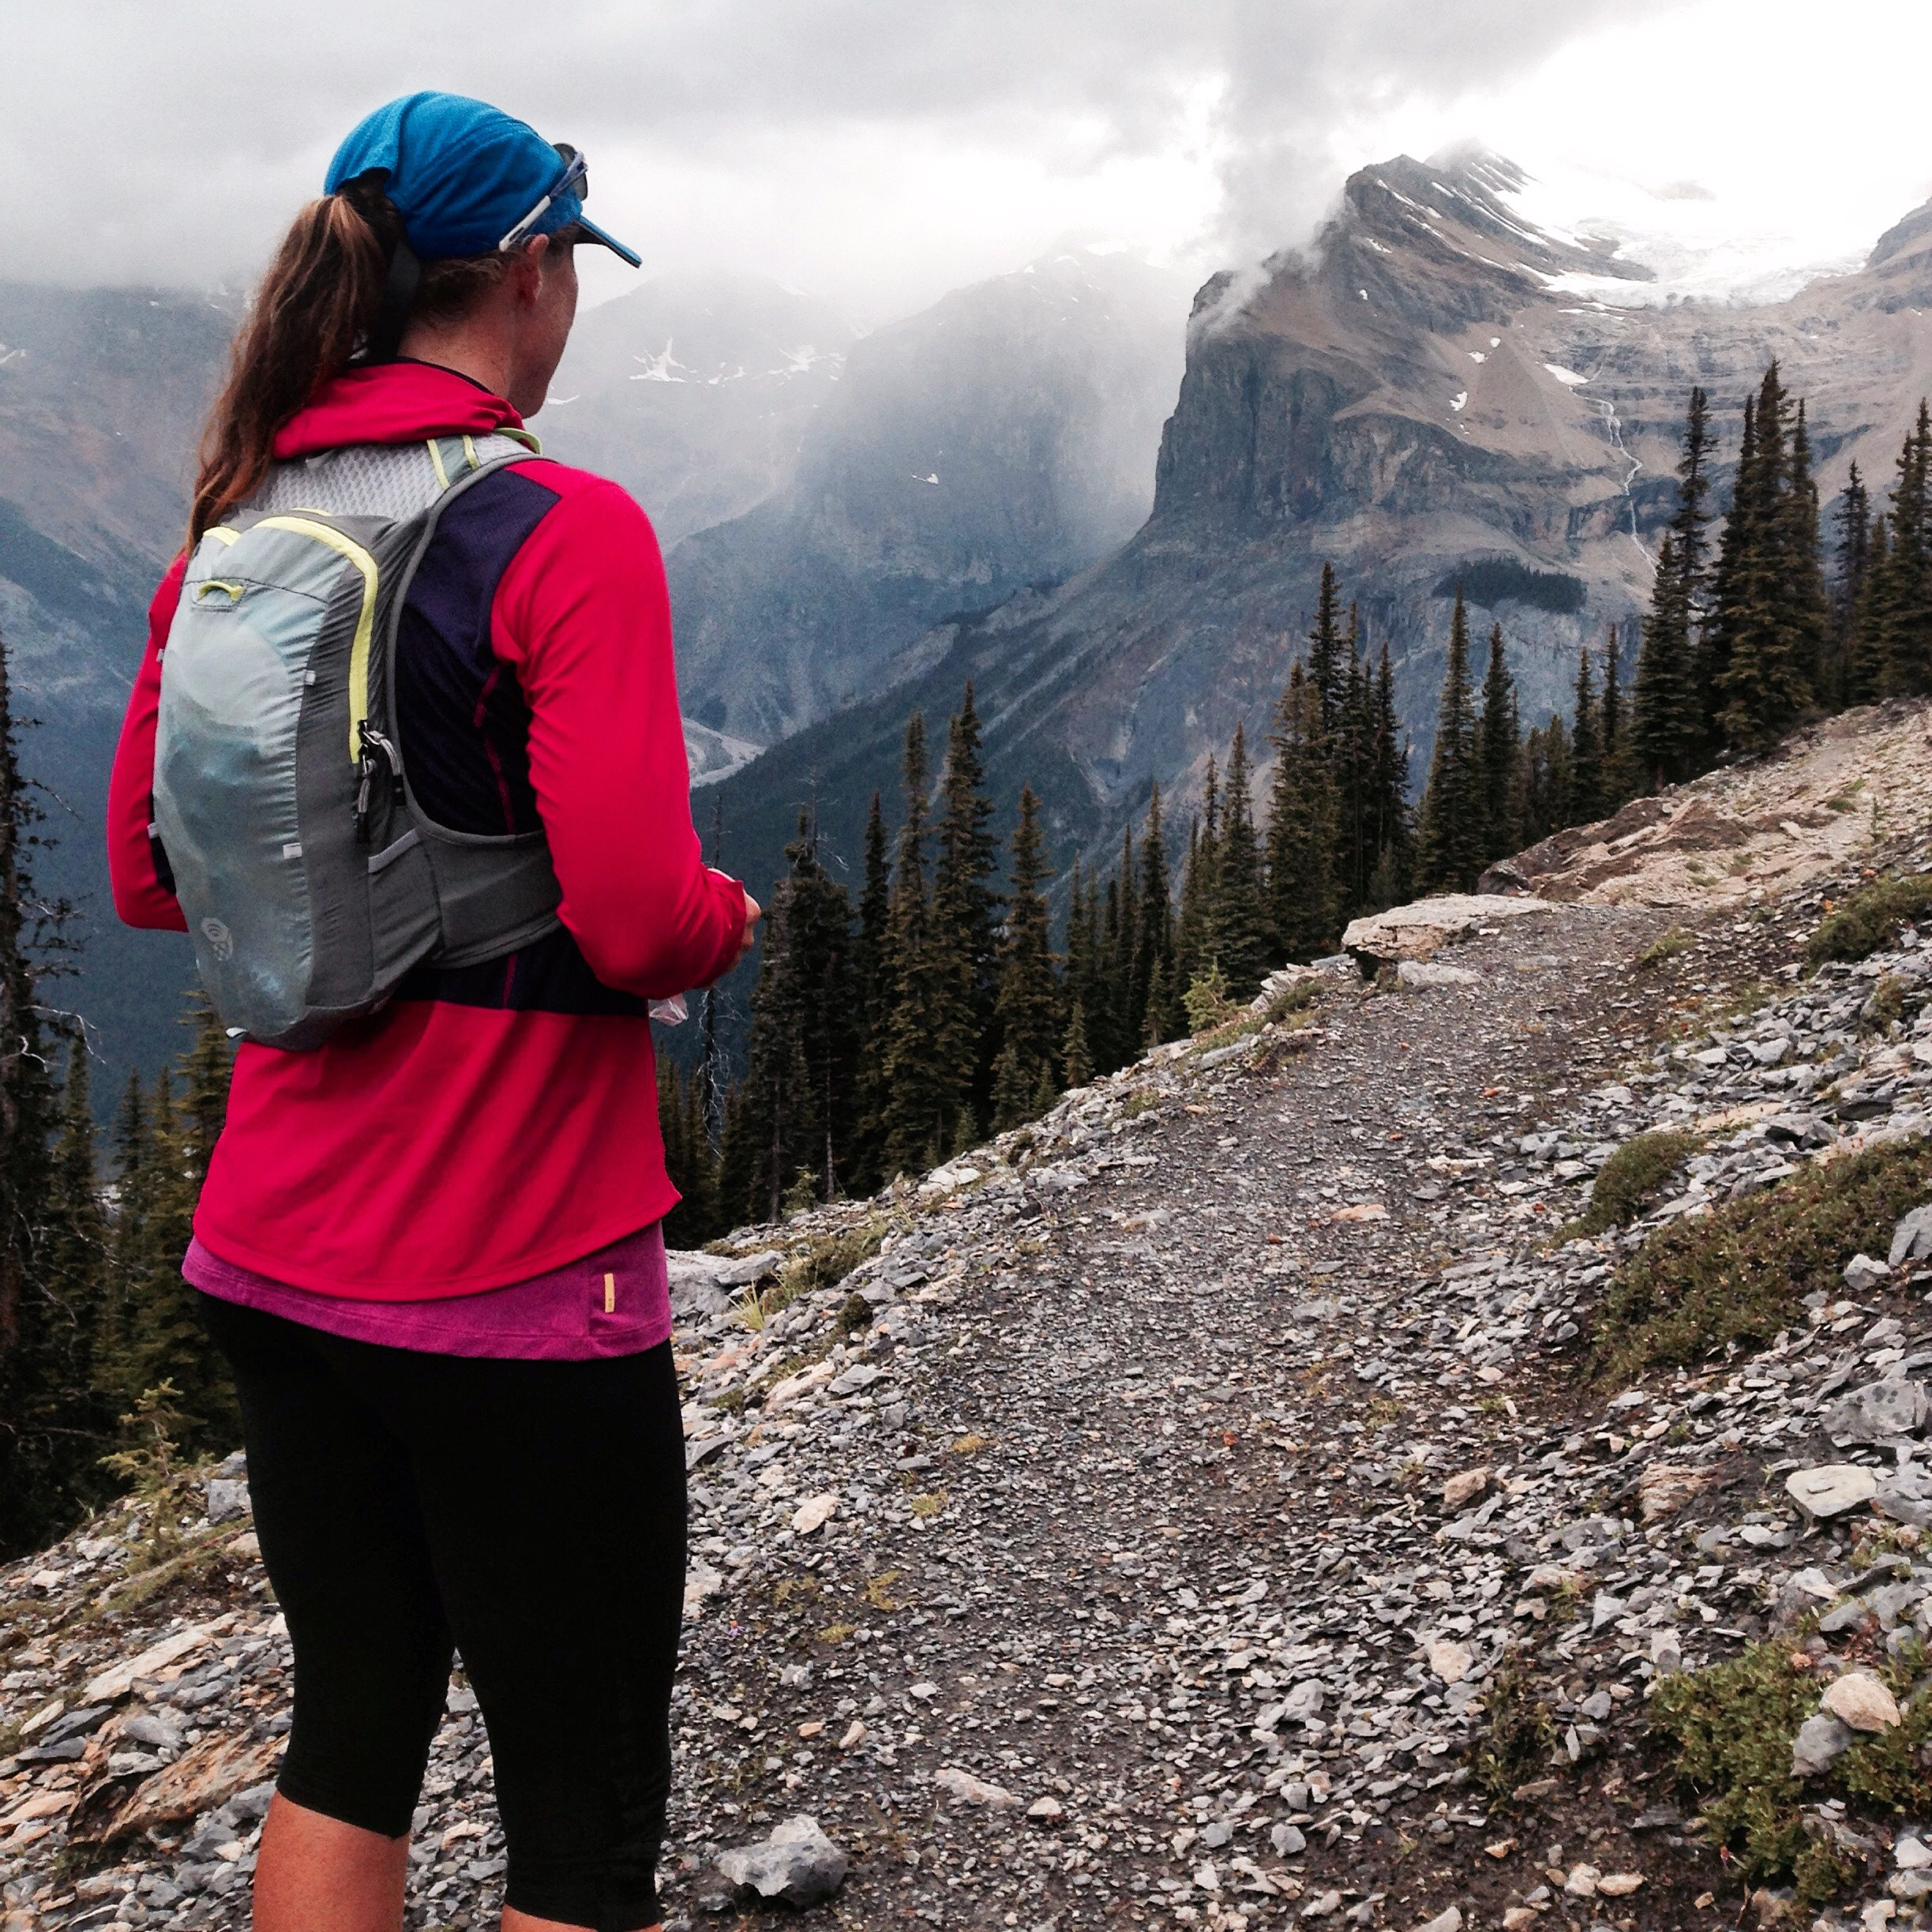 Views from the trails around Emerald Lake